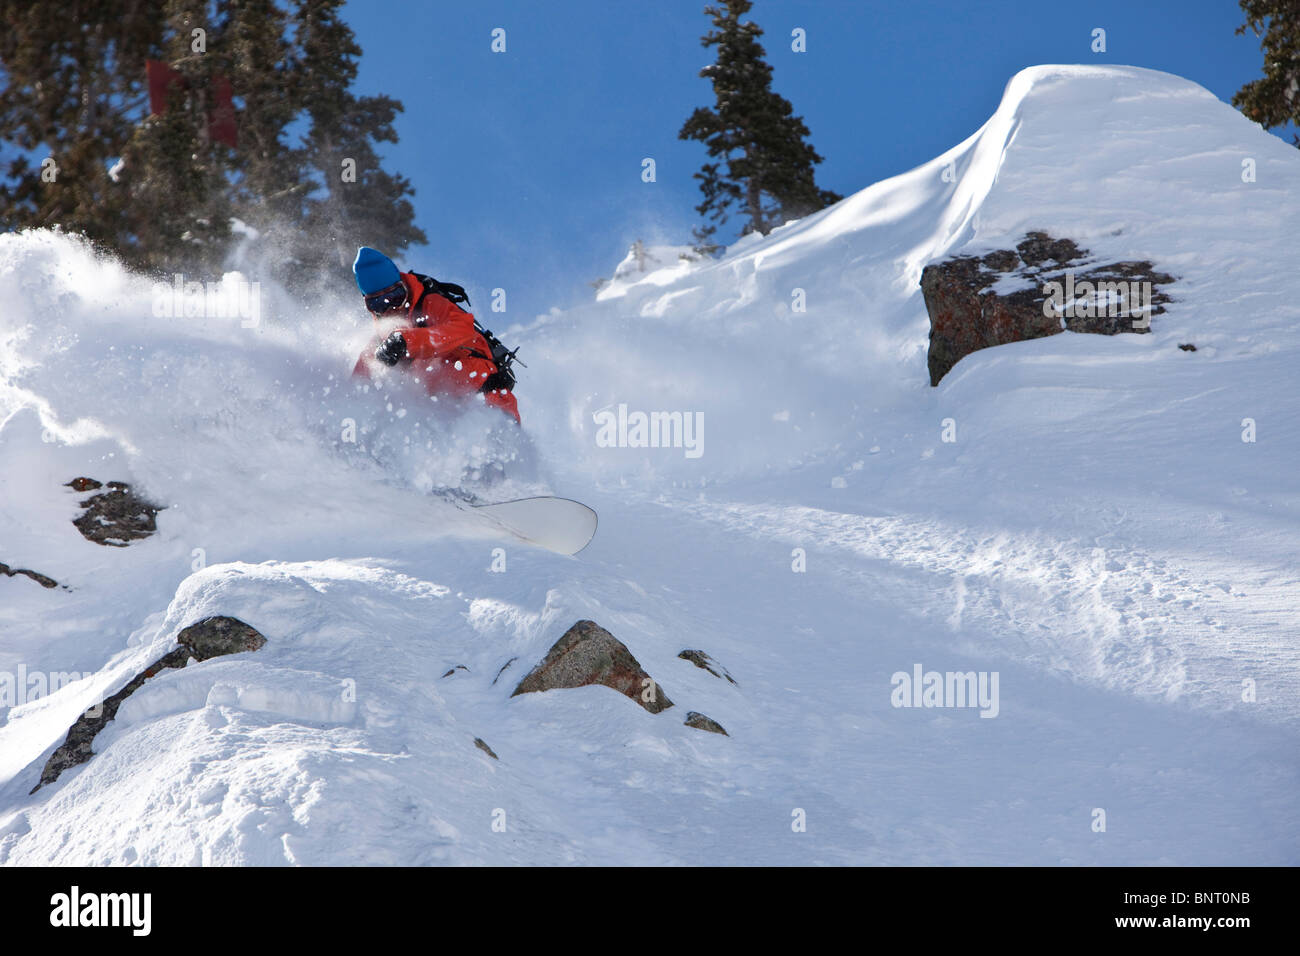 Male snowboarder charges untracked powder on a sunny day in Utah. - Stock Image